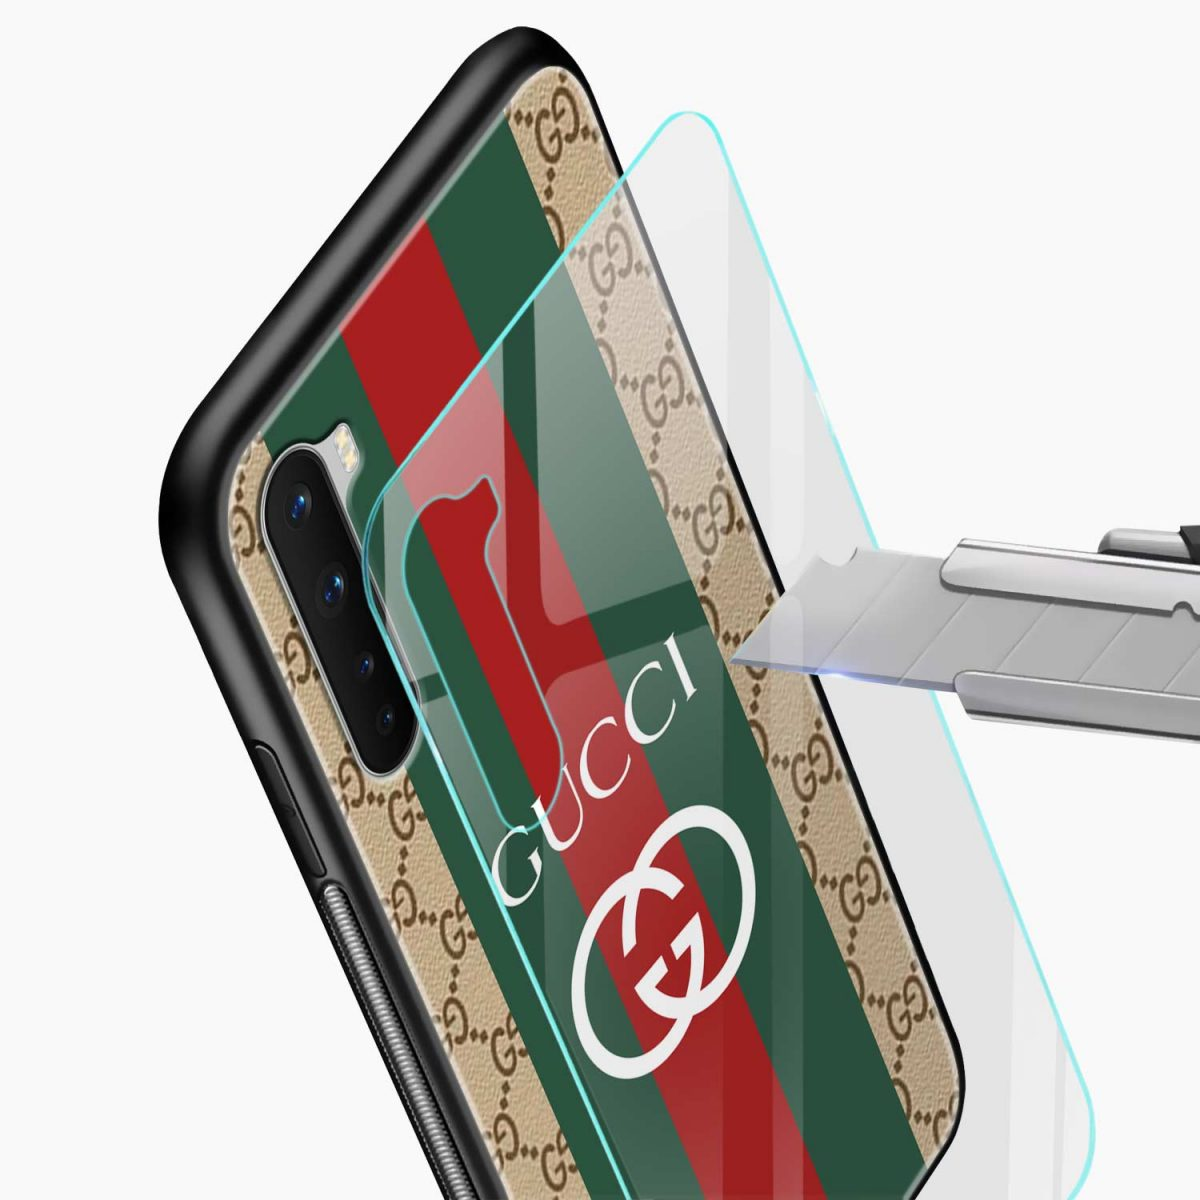 gucci strips pattern glass view oneplus nord back cover